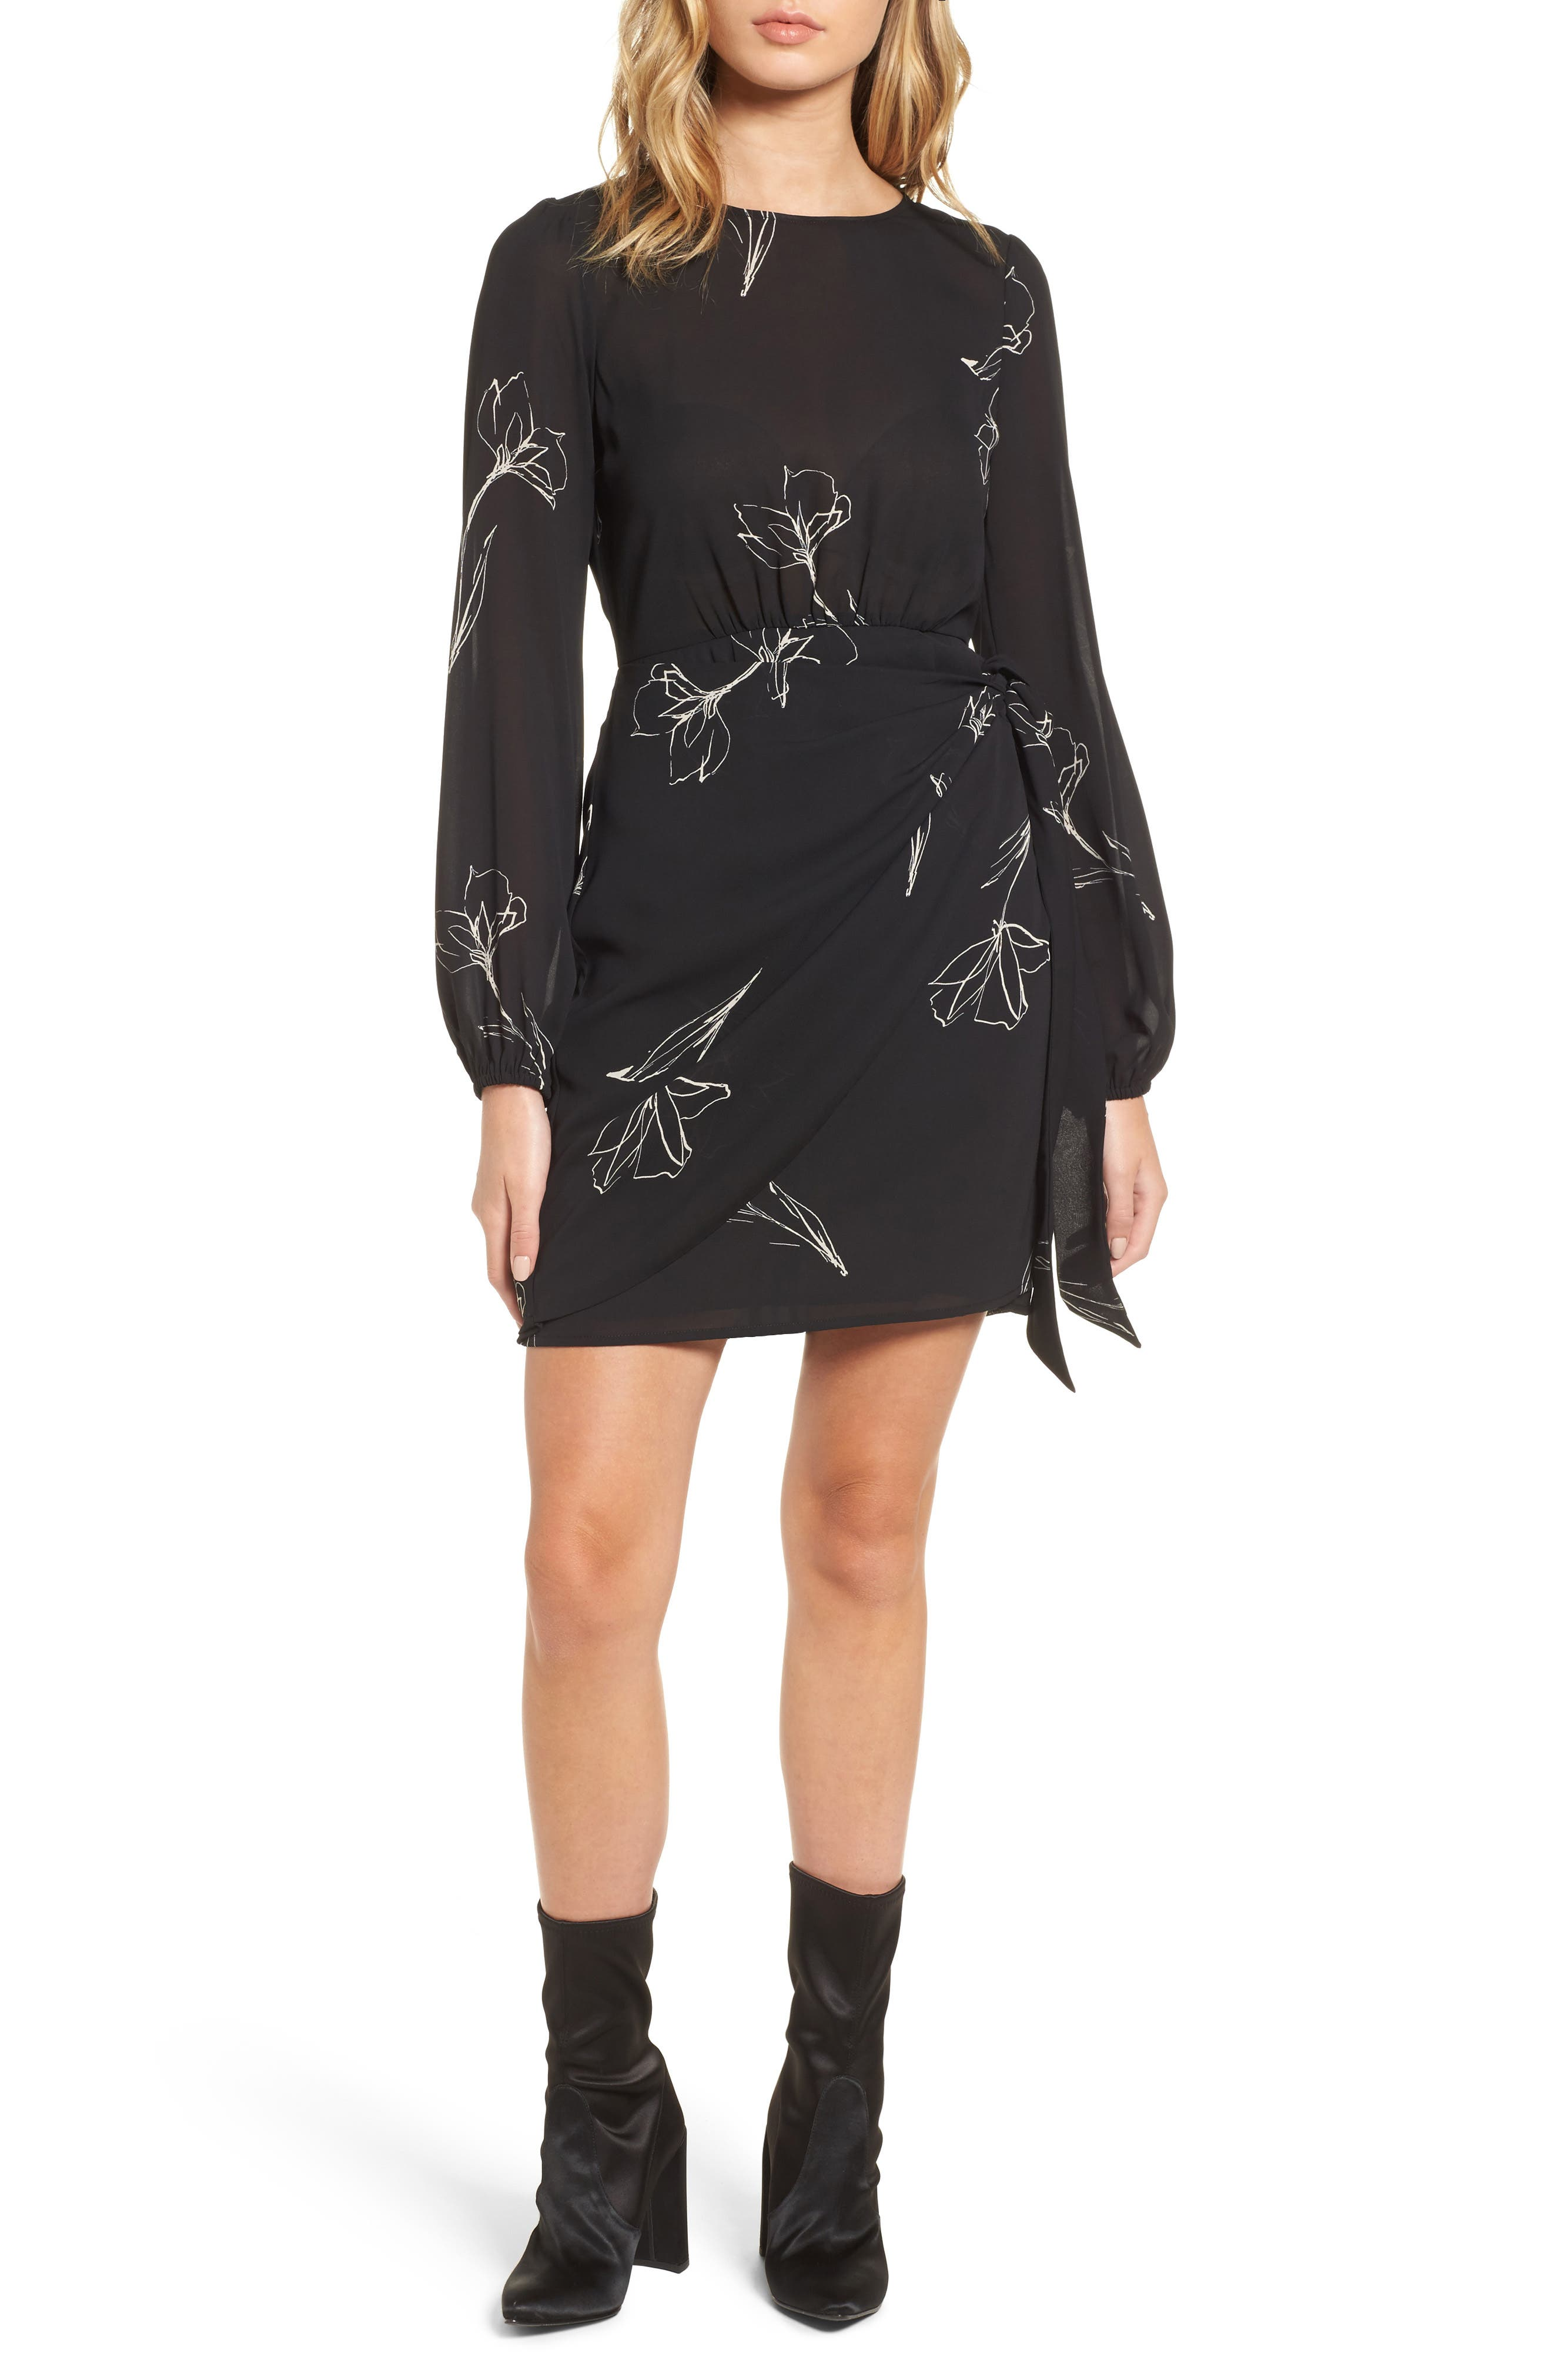 Main Image - ASTR the Label Tie Skirt Dress